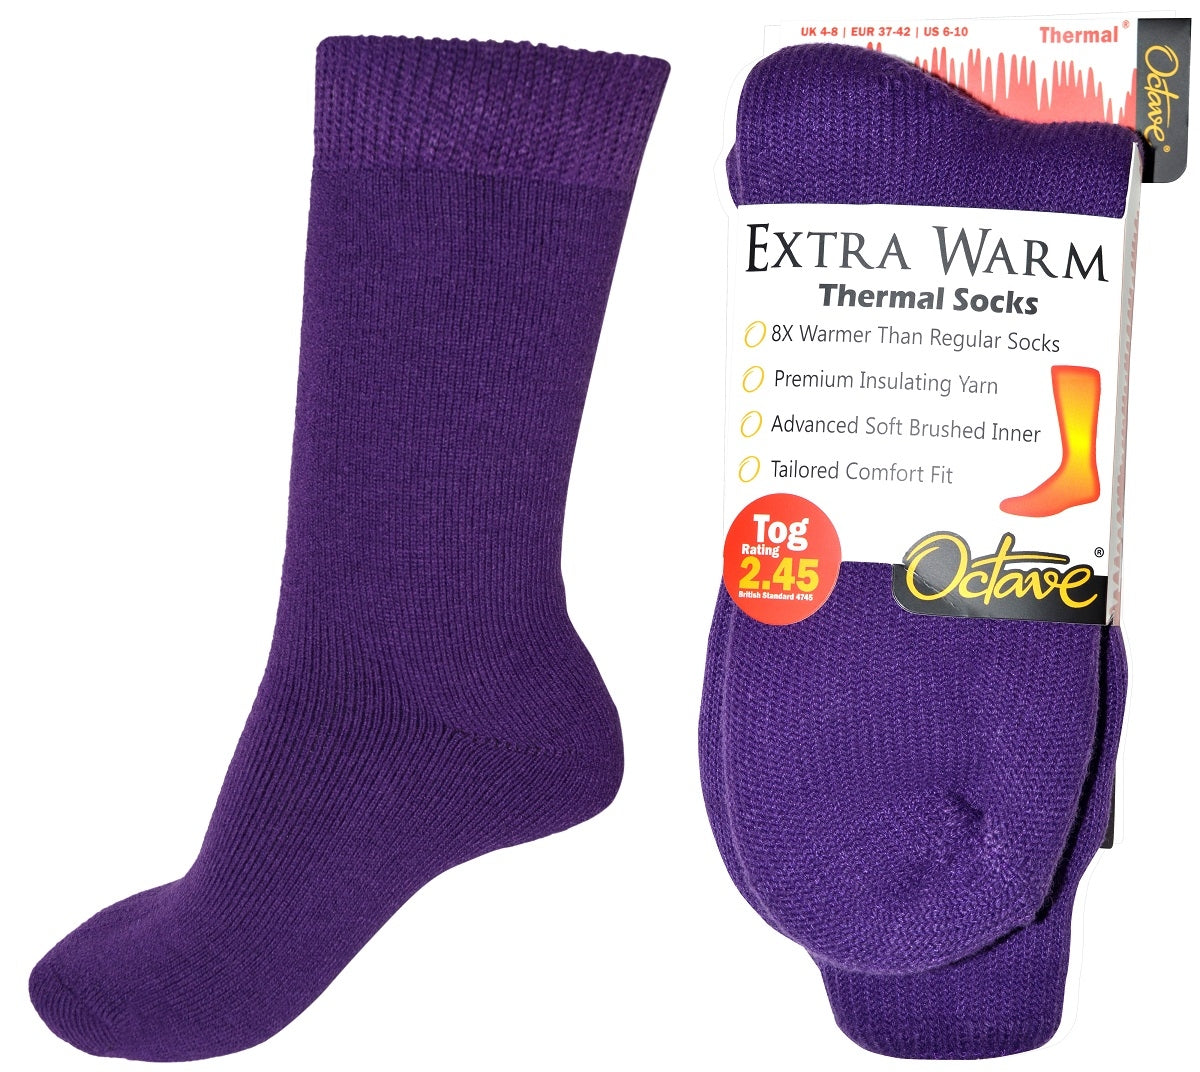 OCTAVE Womens Extra Warm Thermal Socks 2.45 TOG - Purple